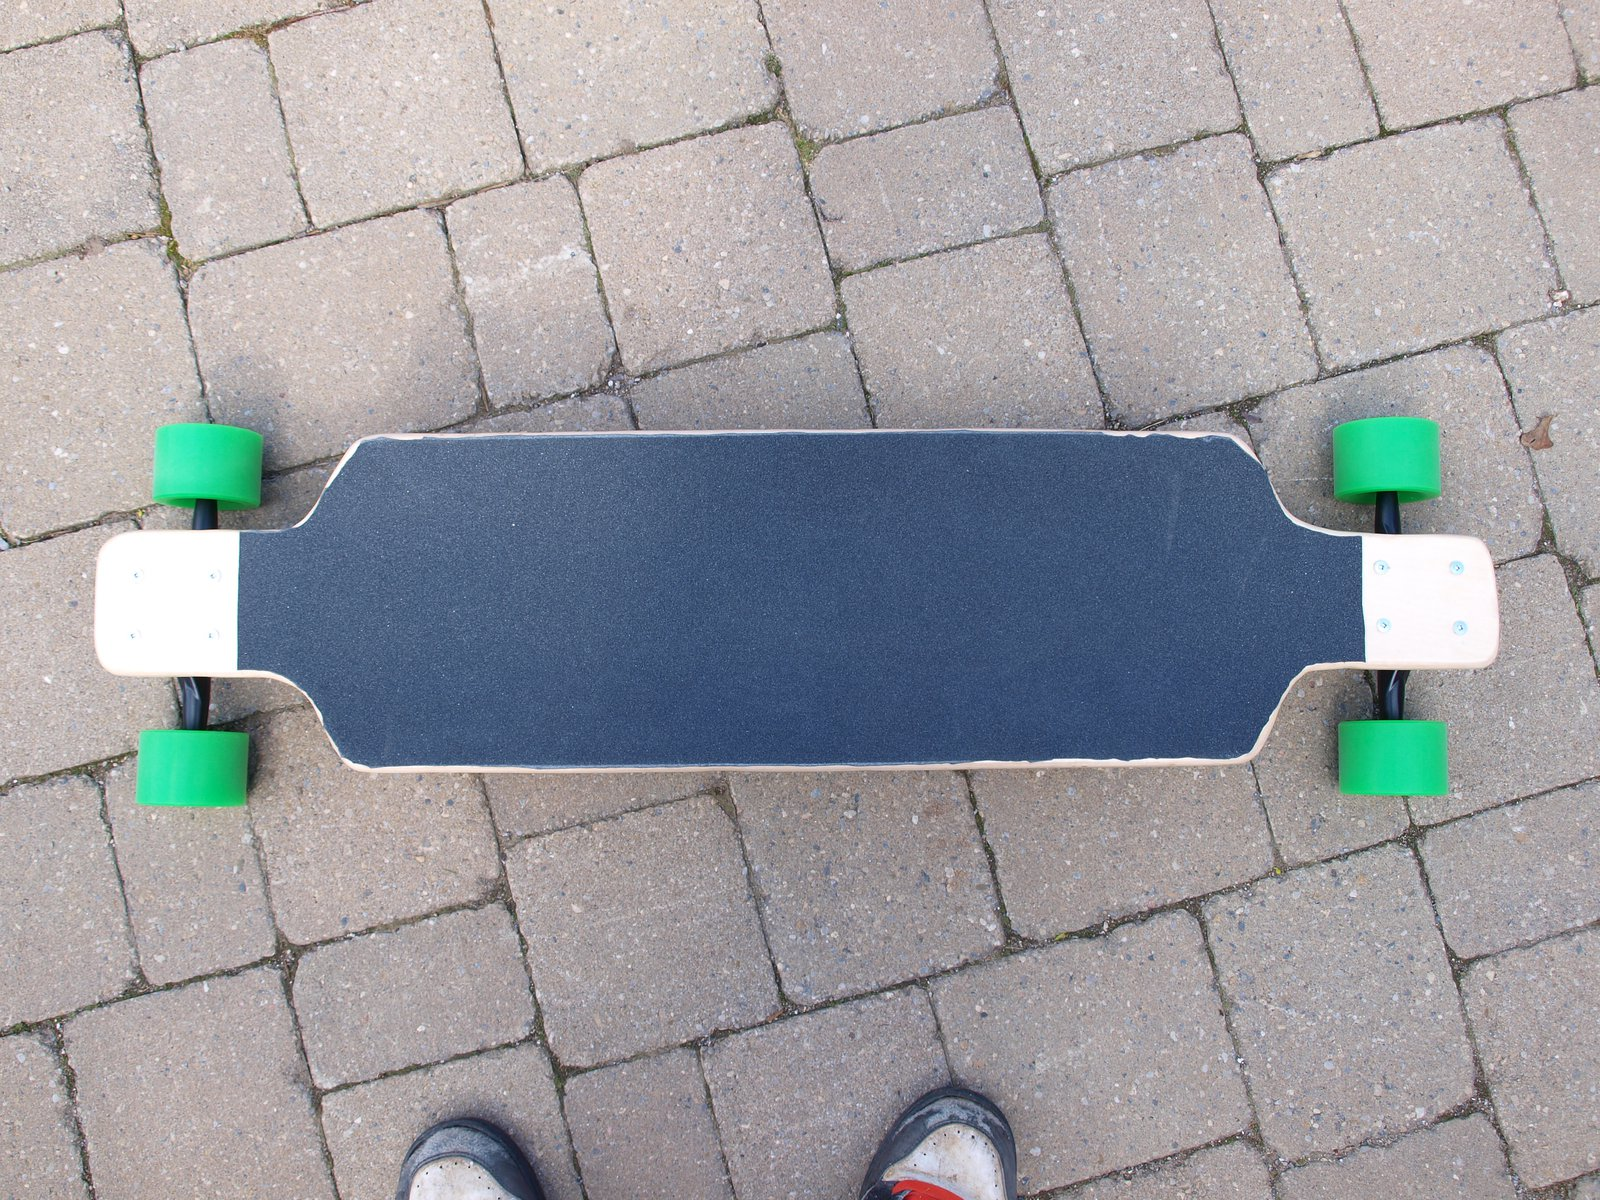 Homemade longboard